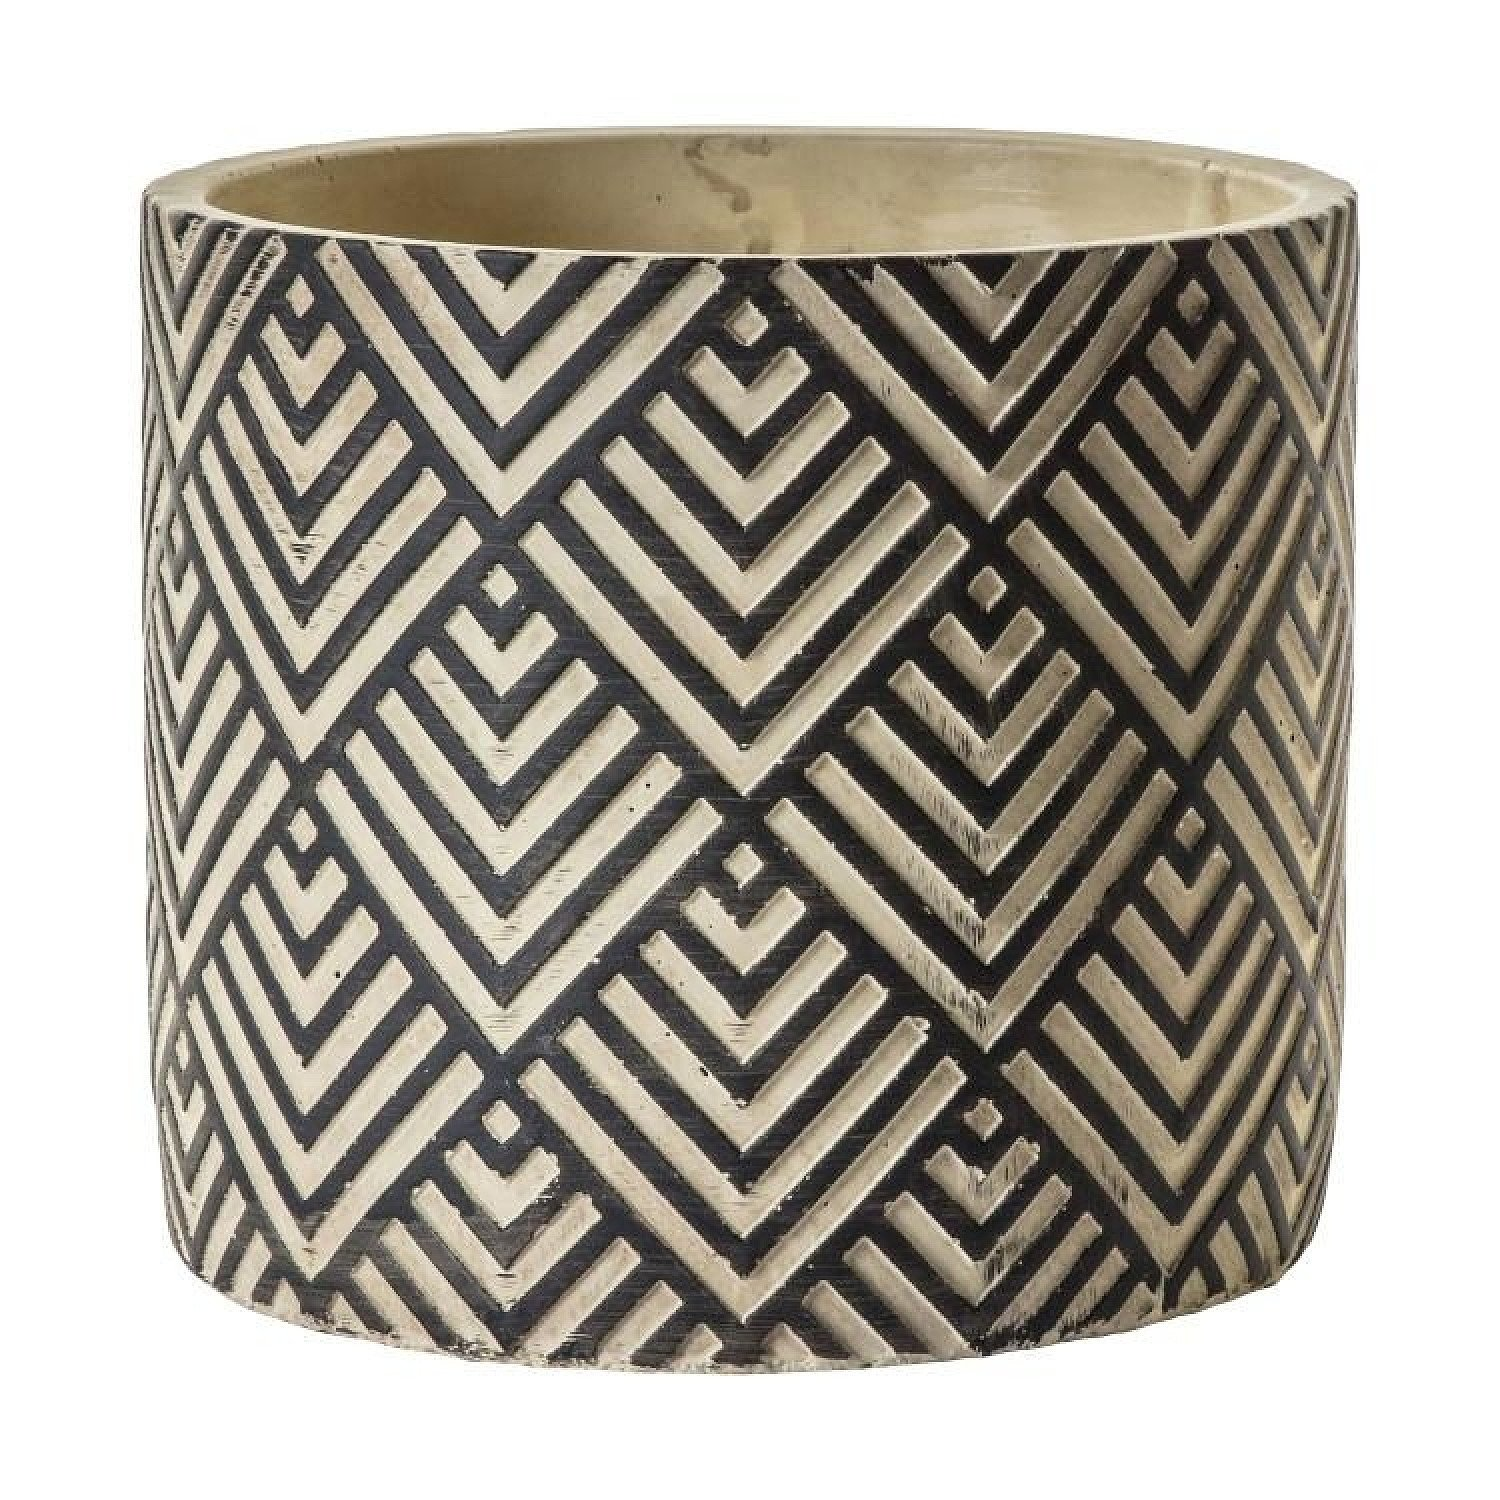 SALE - Gallery Direct Marlin Black Natural Pot Small, Outlet!